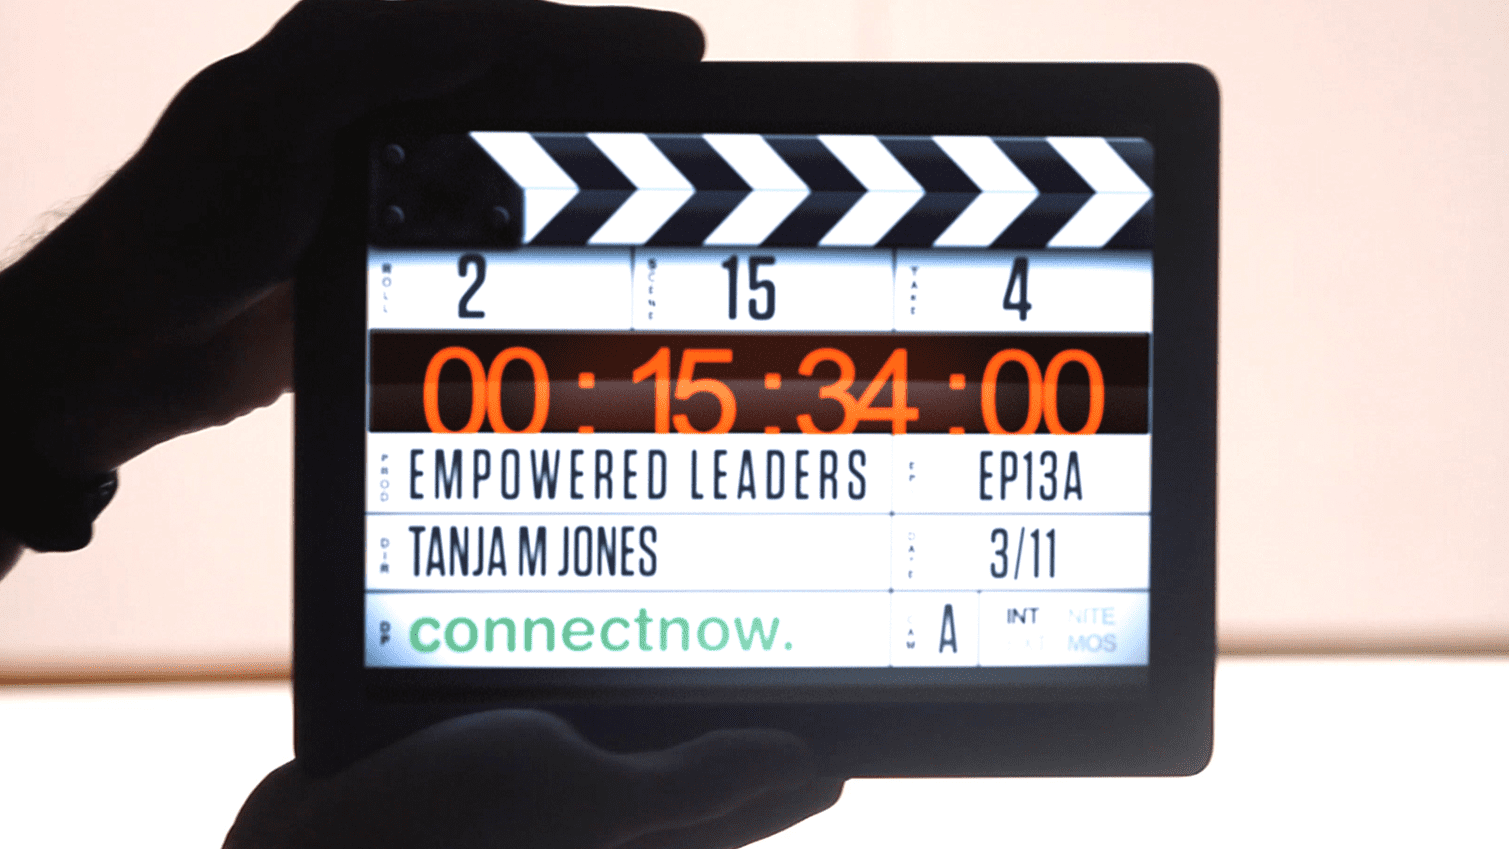 Photo of Transform PM Ep 13A: Empowered Leaders, Tanja M Jones